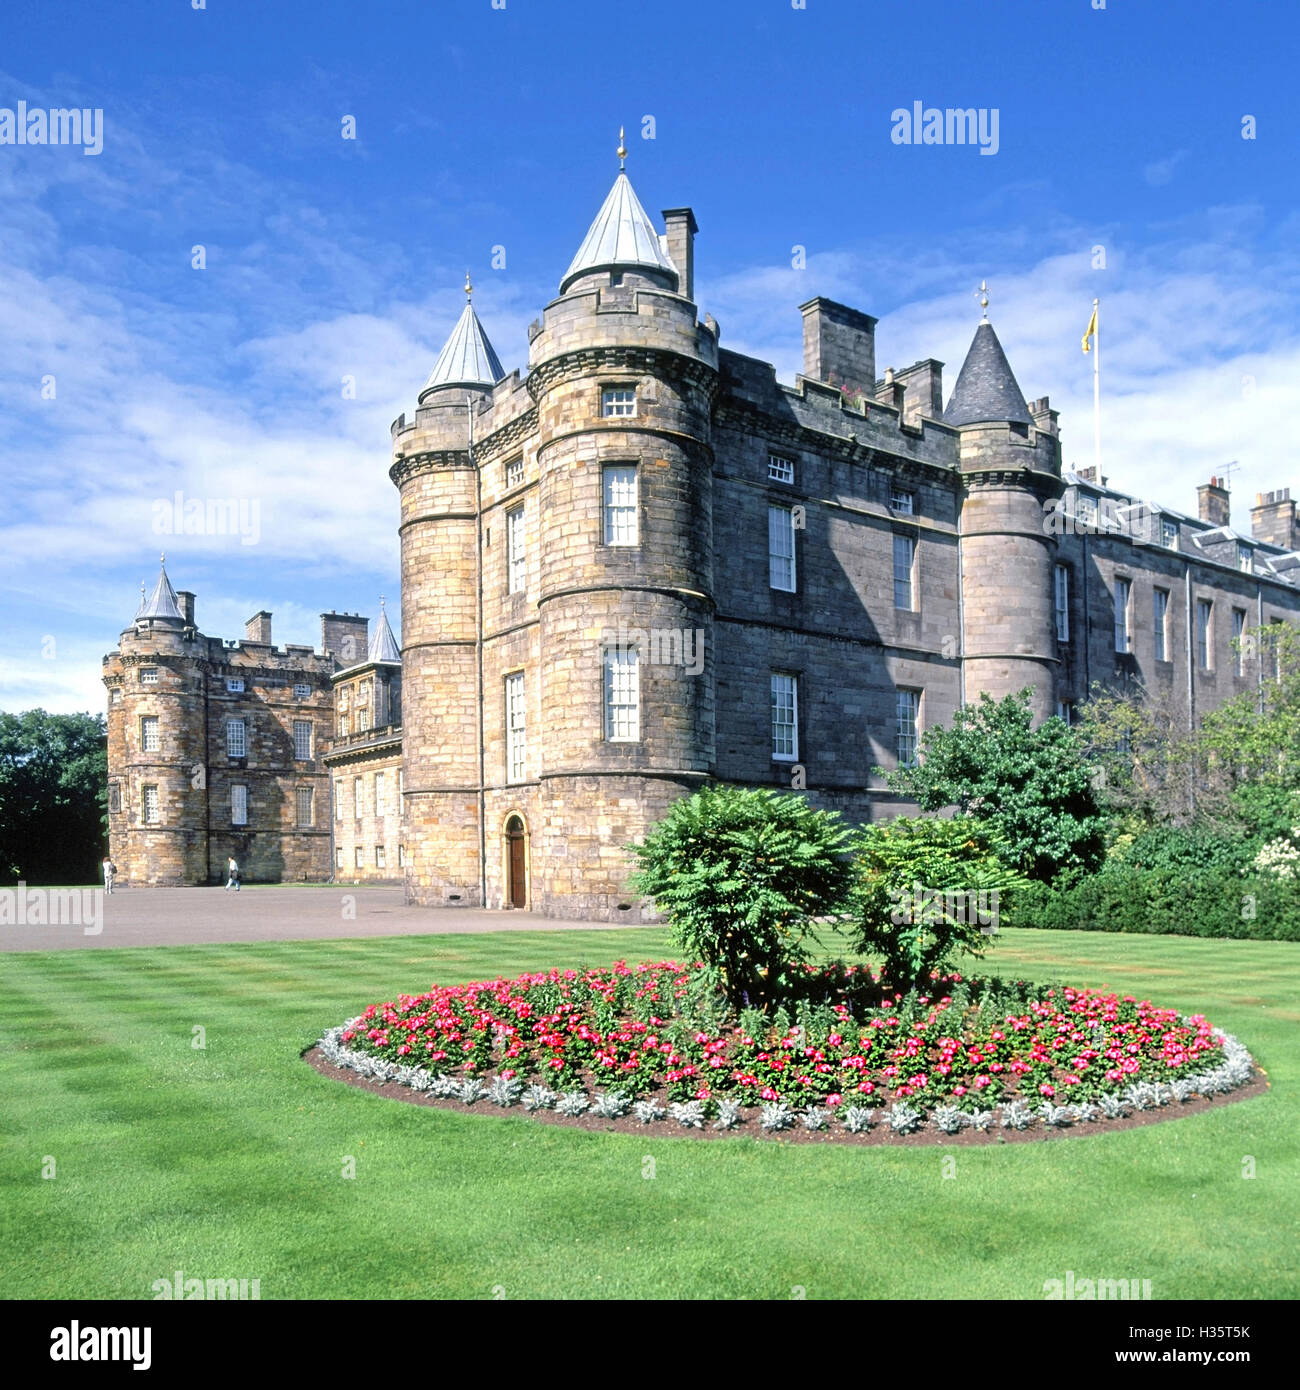 Flowers and lawn stripes at front of Scottish Holyrood Palace in Edinburgh UK official residence of the British - Stock Image